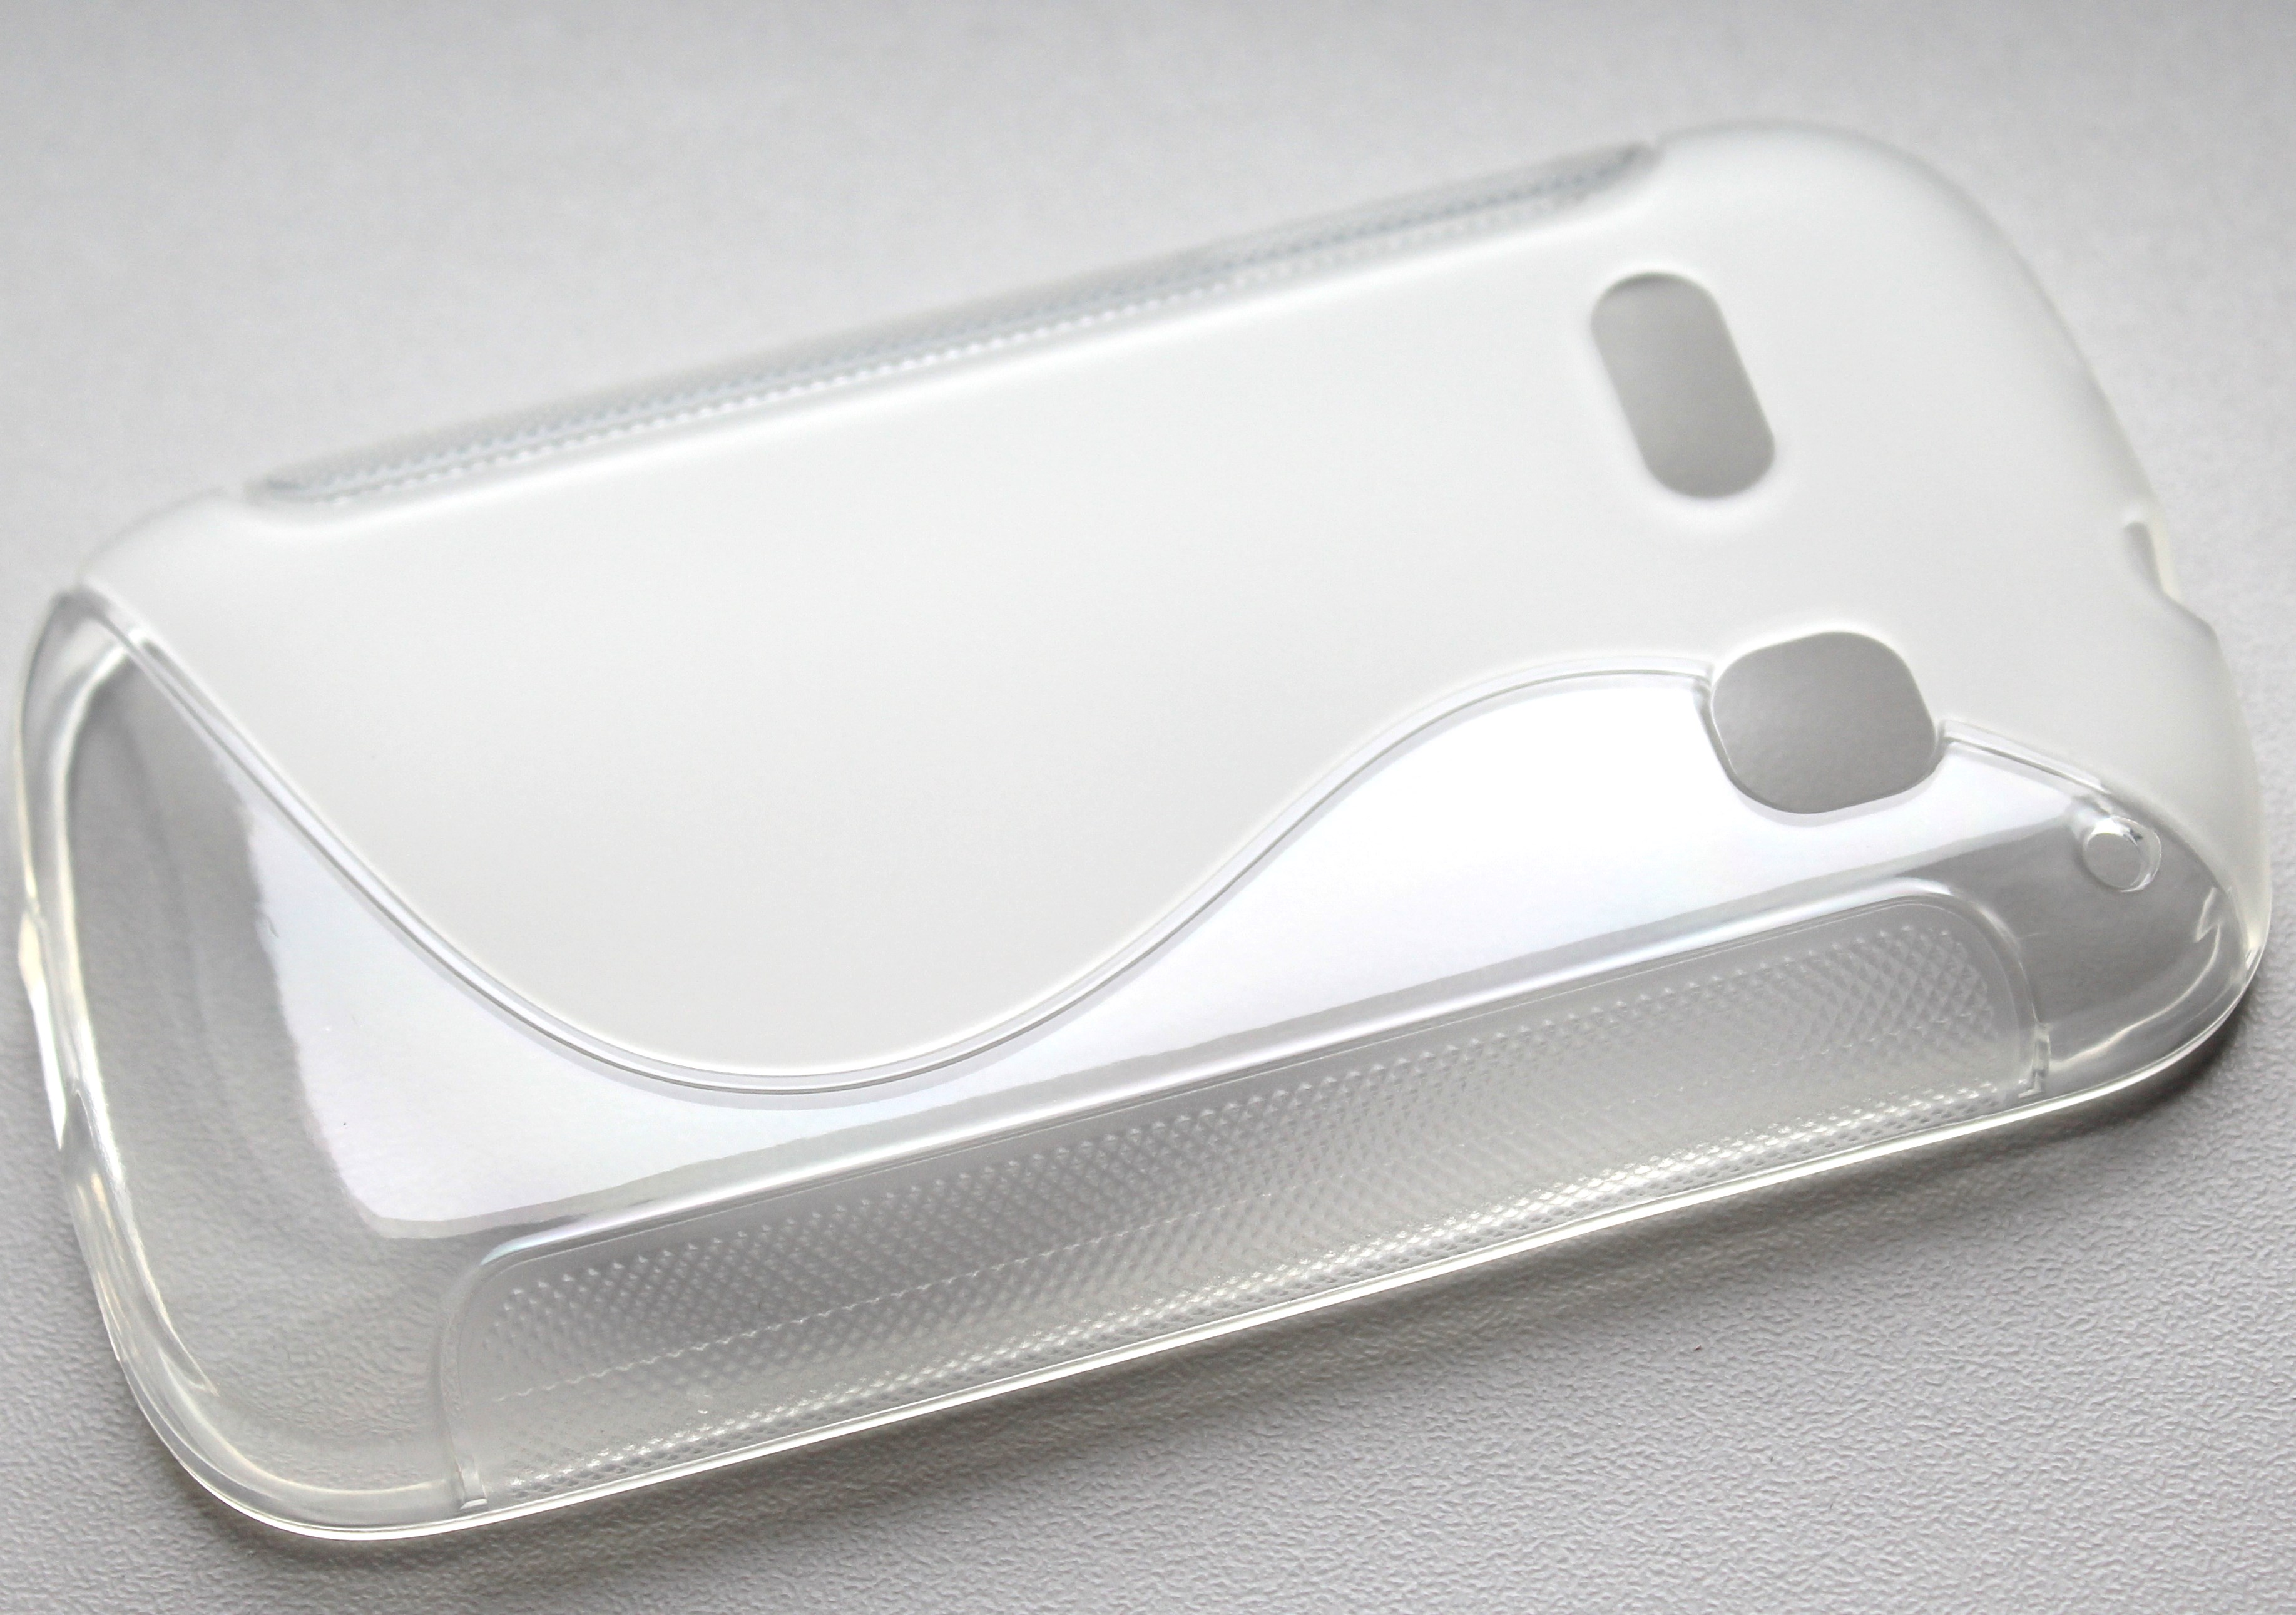 S Case pouzdro Alcatel One Touch C3 (4033D) transparent white